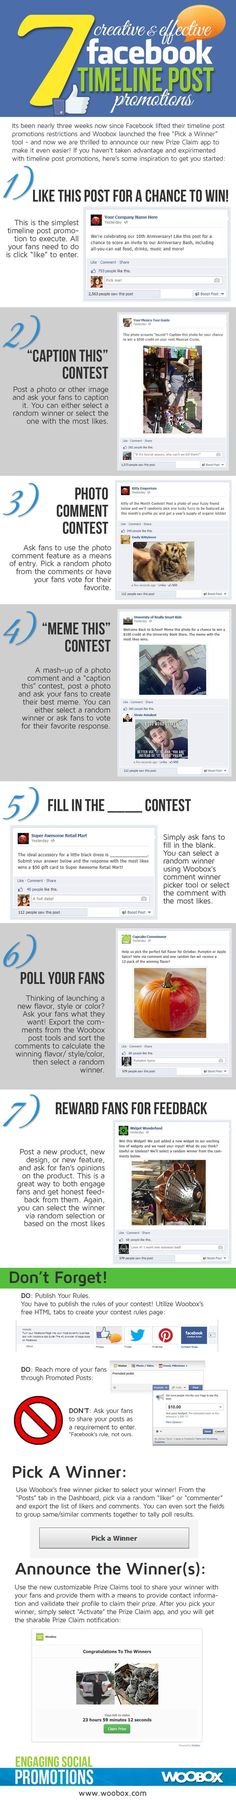 Facebook Promotions Ideas Infographic